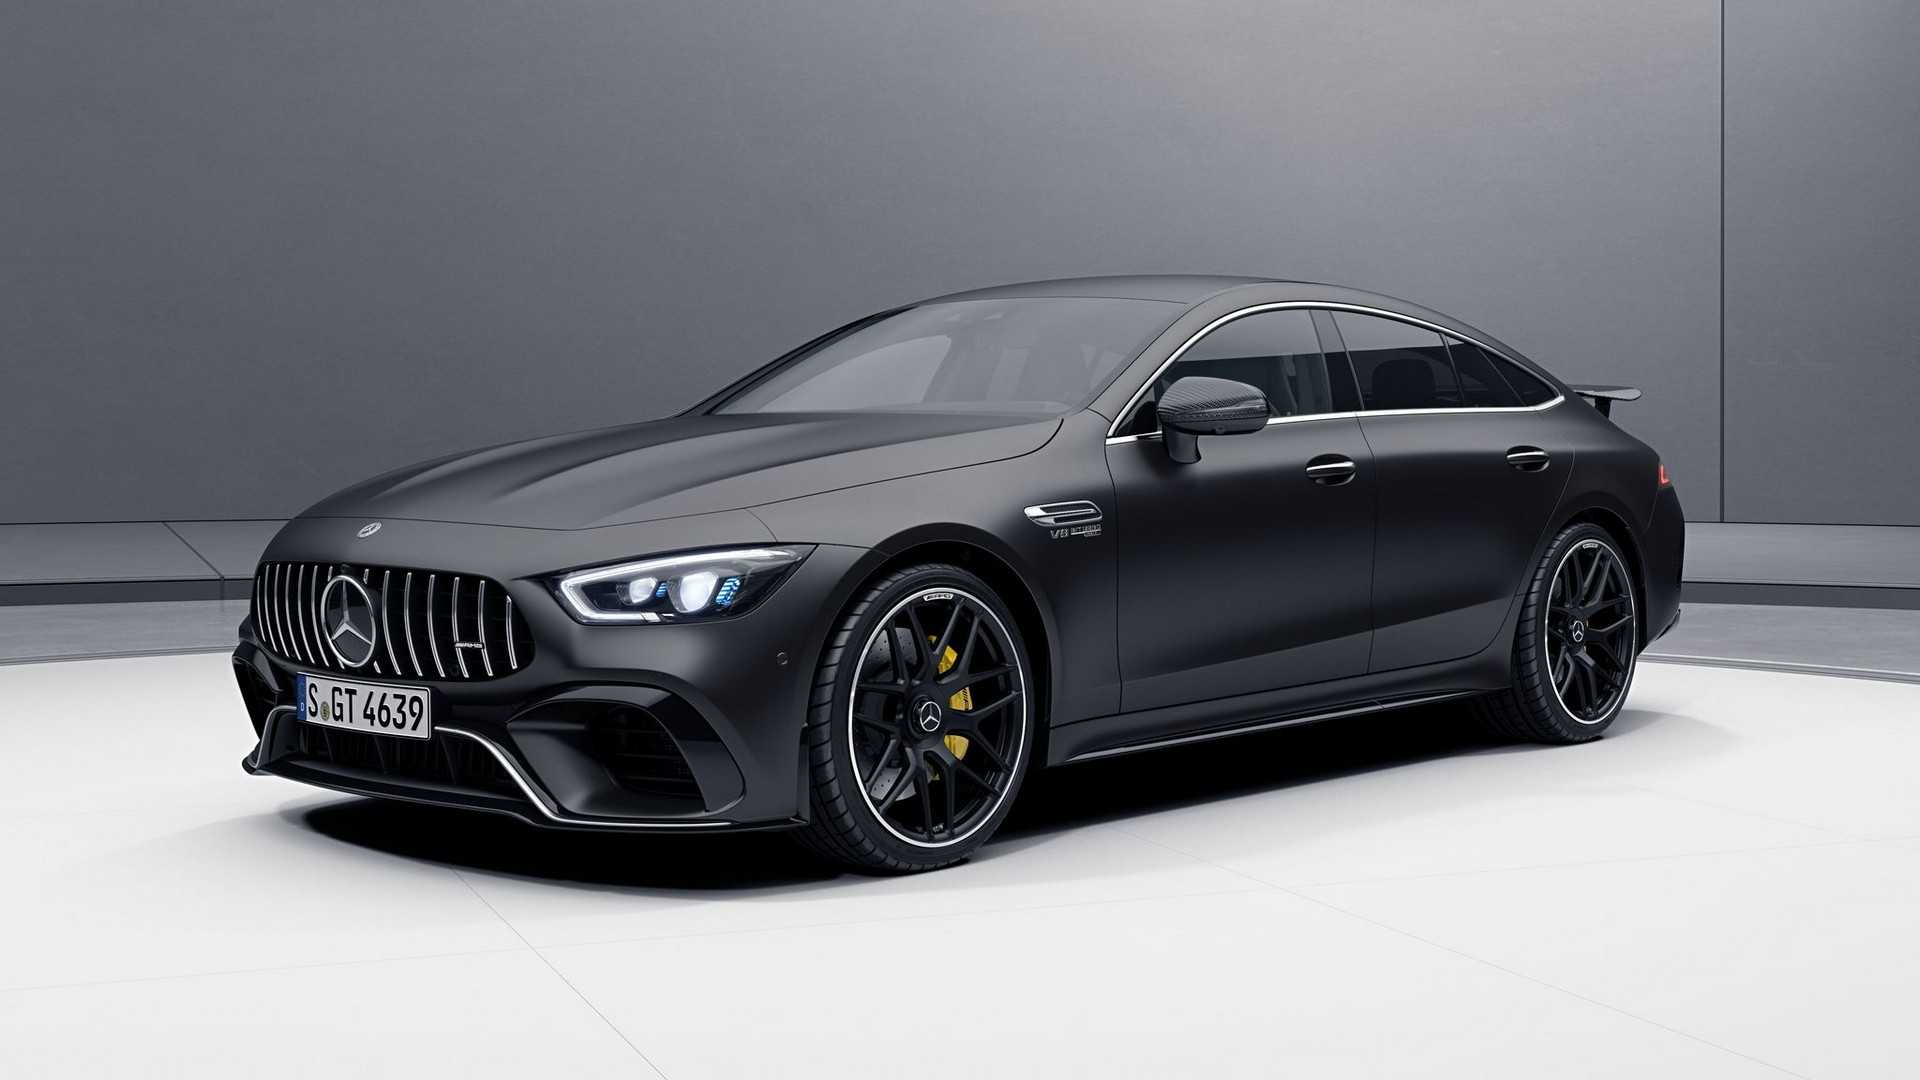 mercedes amg gt 4 door coupe now available with amg aerodynamic package autoevolution. Black Bedroom Furniture Sets. Home Design Ideas